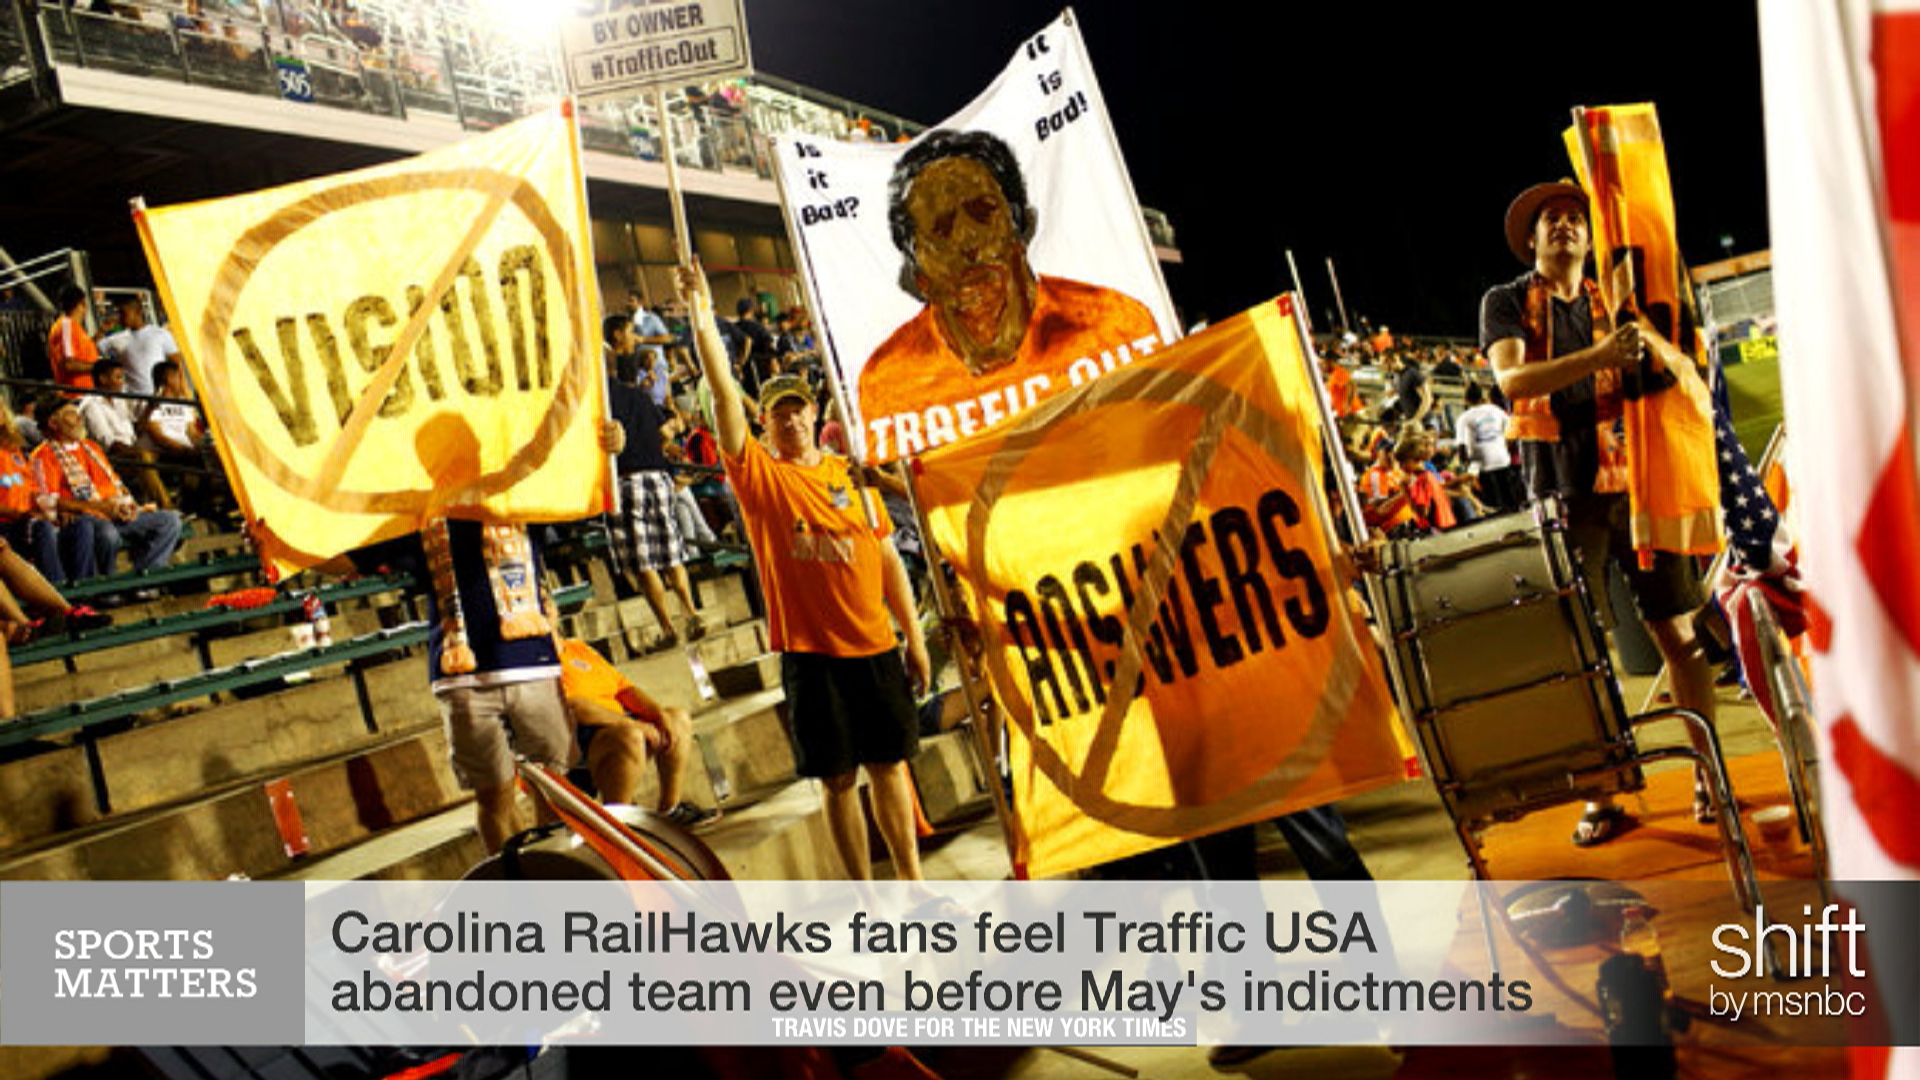 Cary, NC rocked by FIFA Corruption